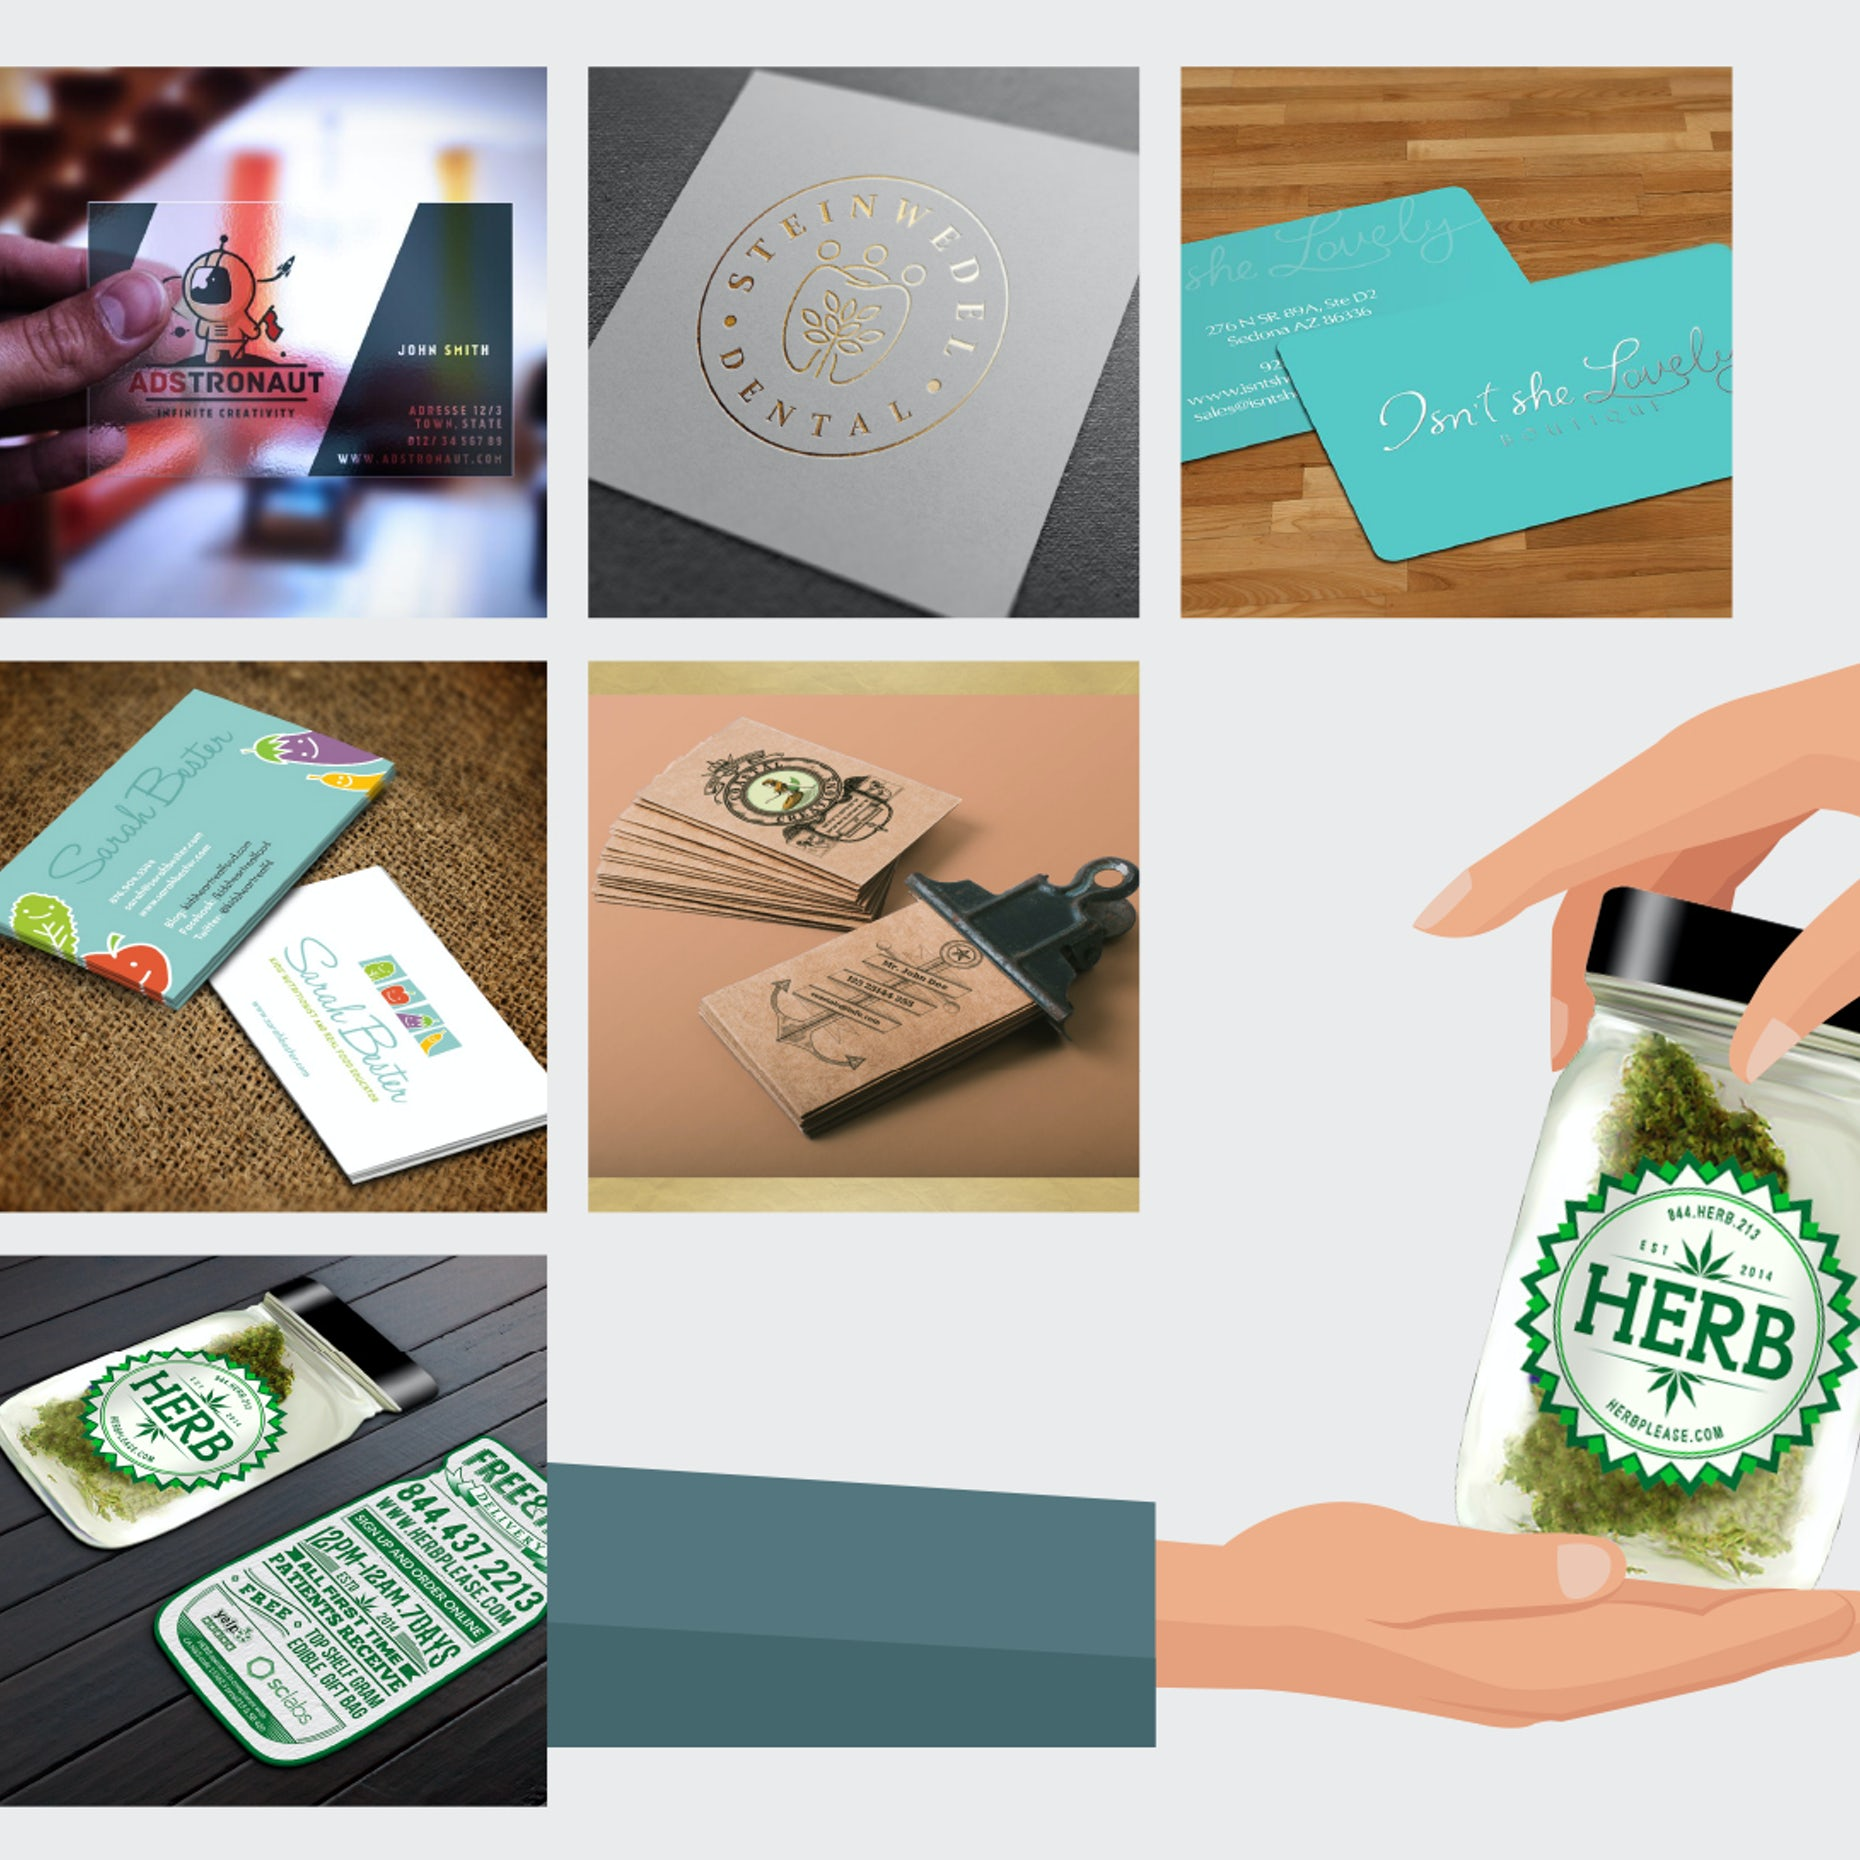 38 unique business cards that will make you stand out